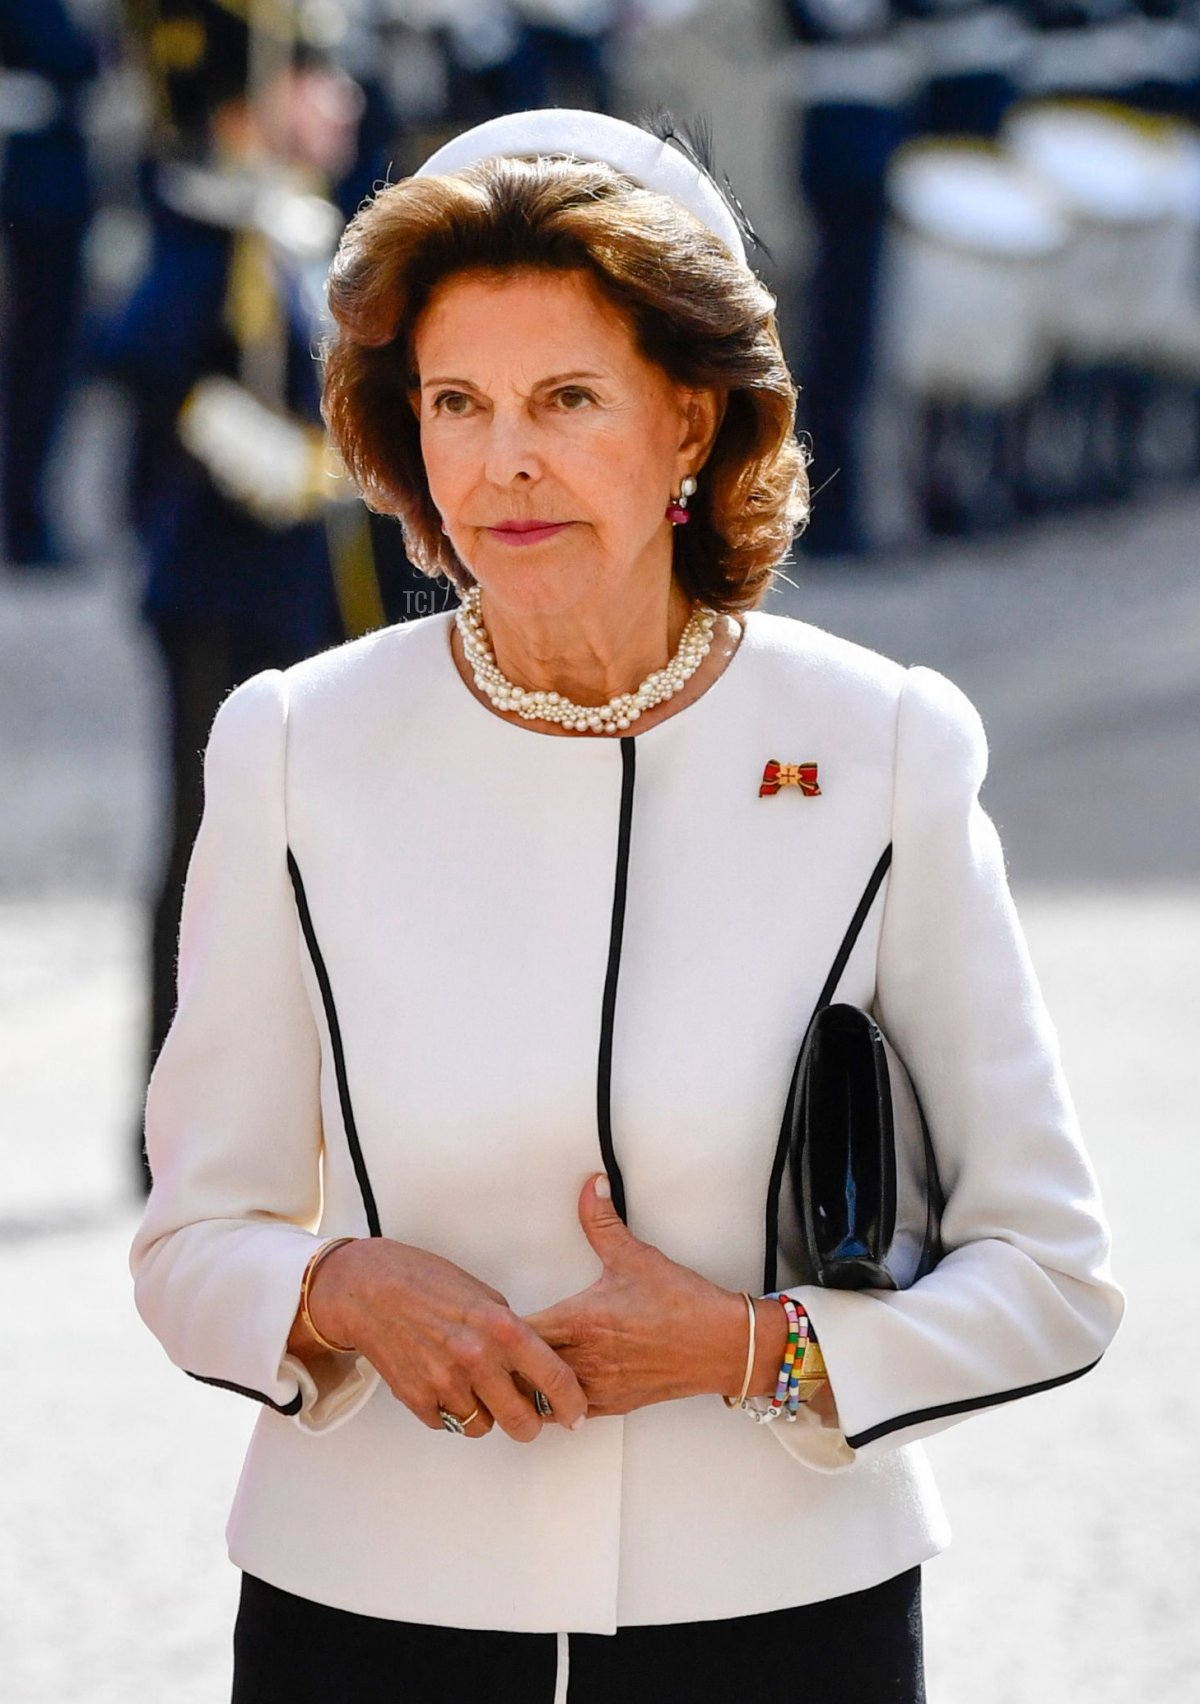 Elke Buedenbender (L), wife of the German President, and Sweden's Queen Silvia arrive at the Stockholm Palace for a welcoming ceremony in Stockholm, on September 7, 2021. - The Steinmeier presidential couple is in Sweden for a three-day state visit